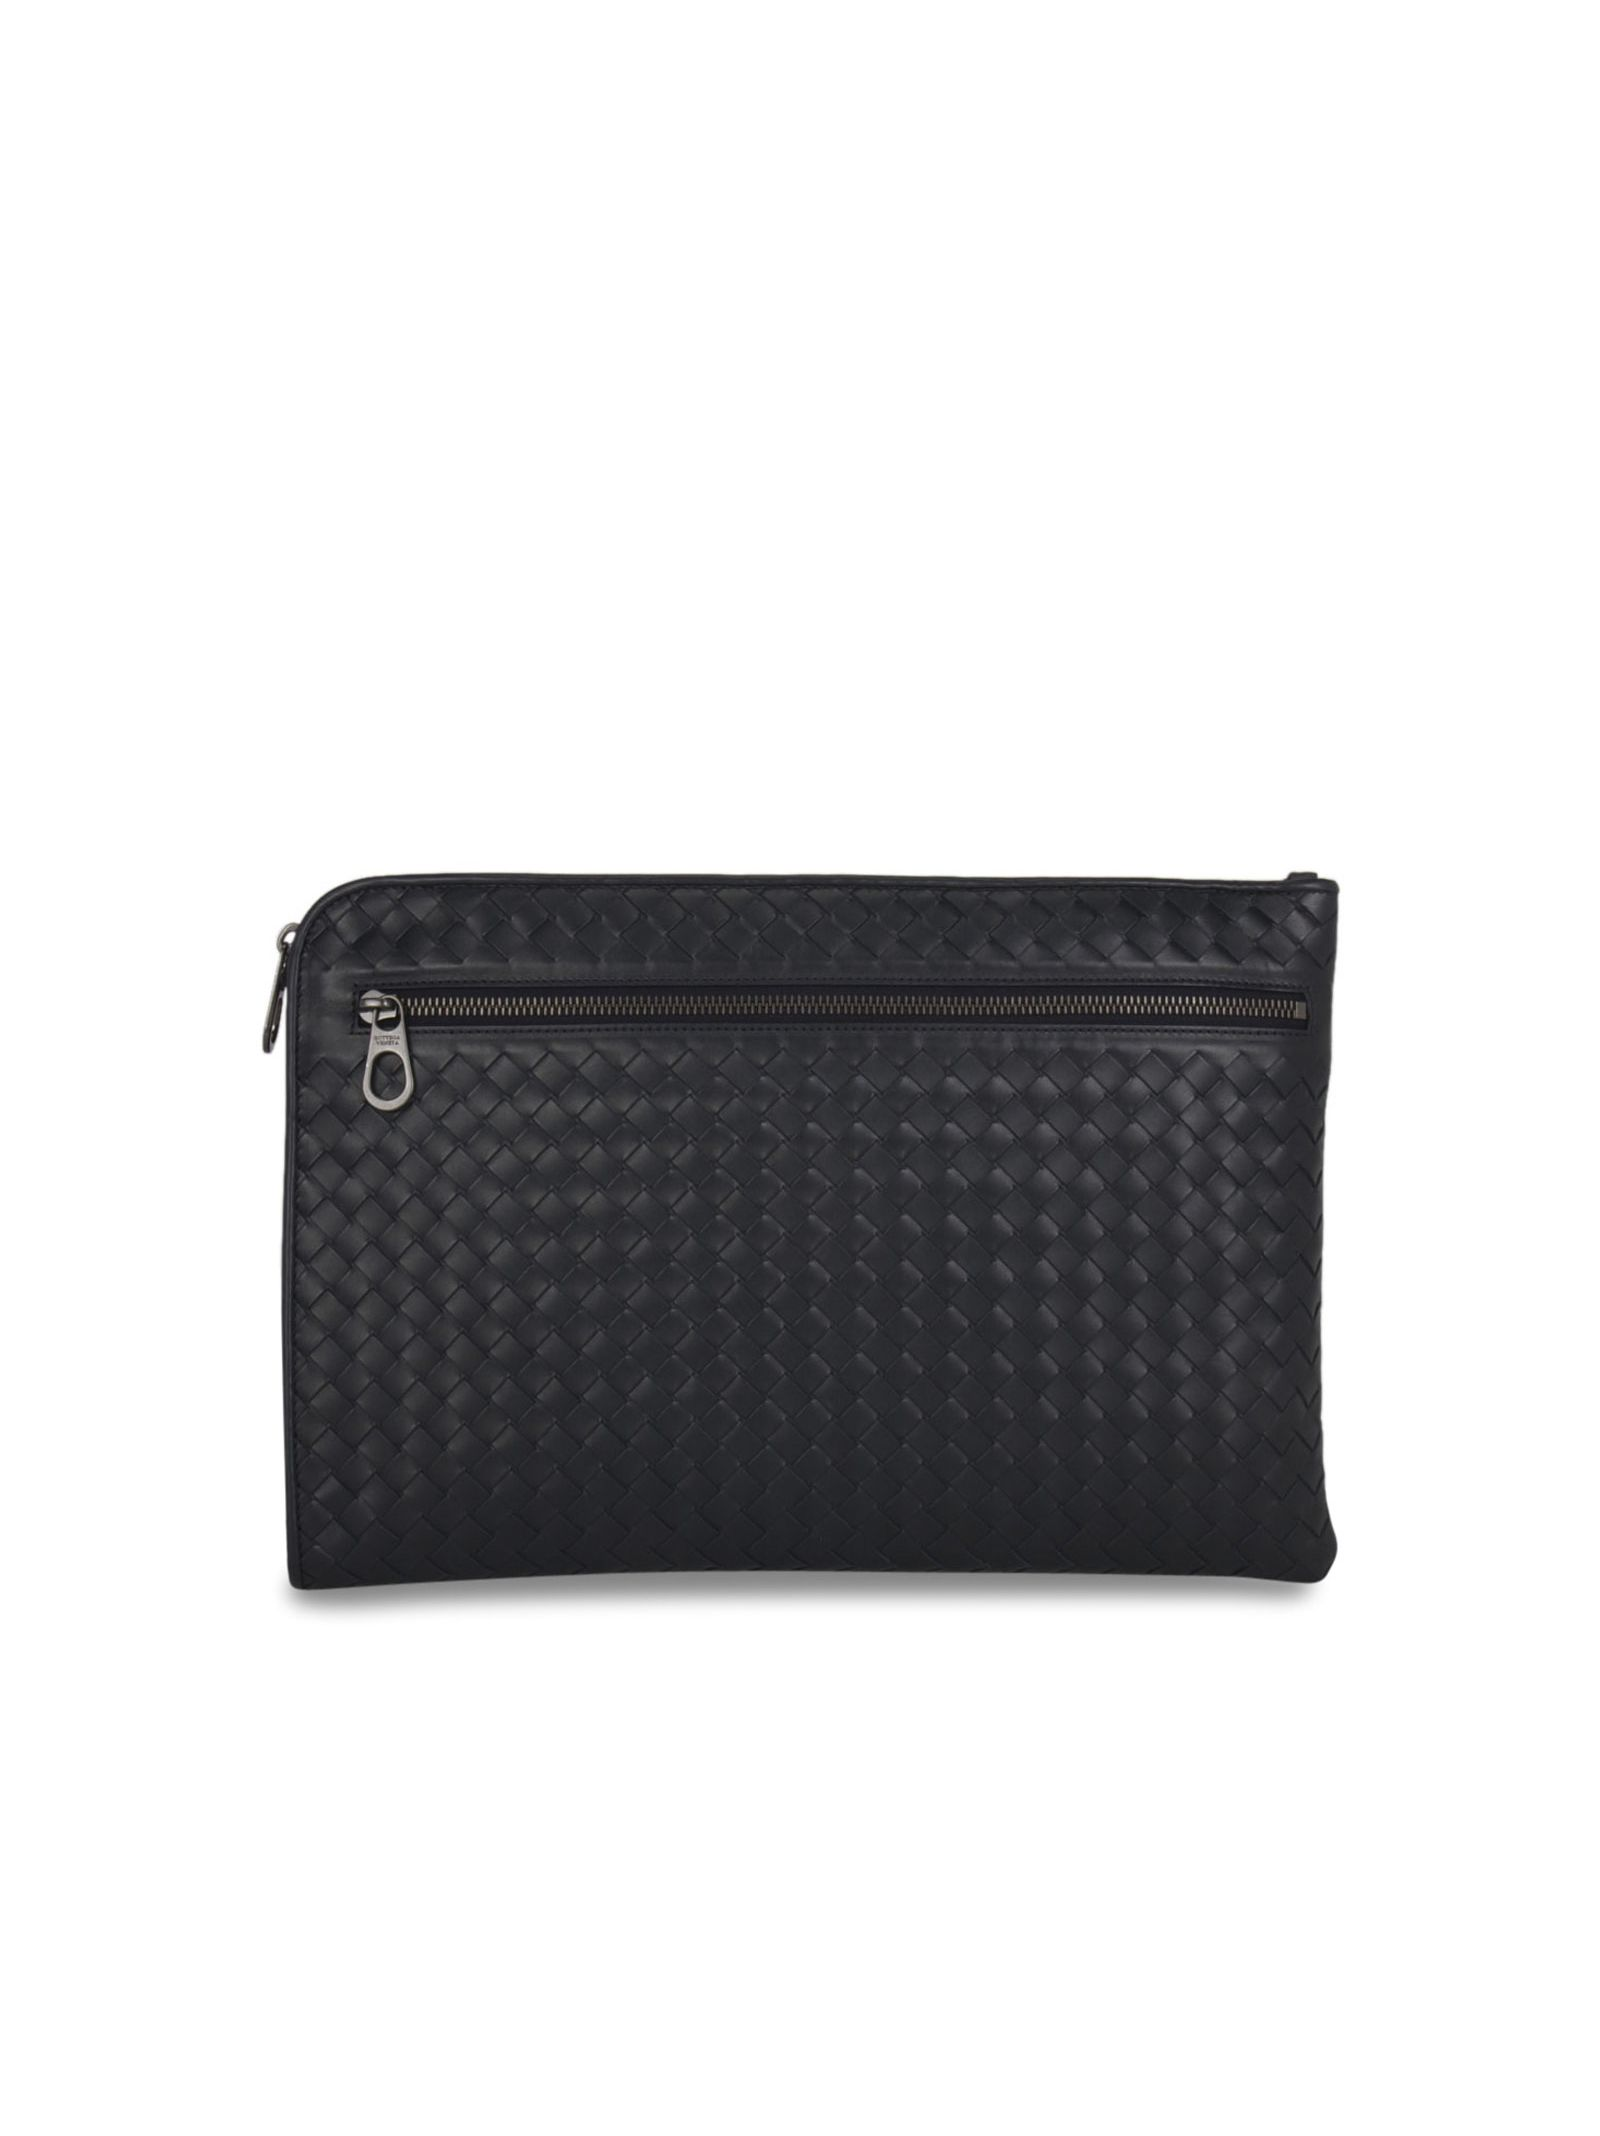 Bottega Veneta Braided Clutch